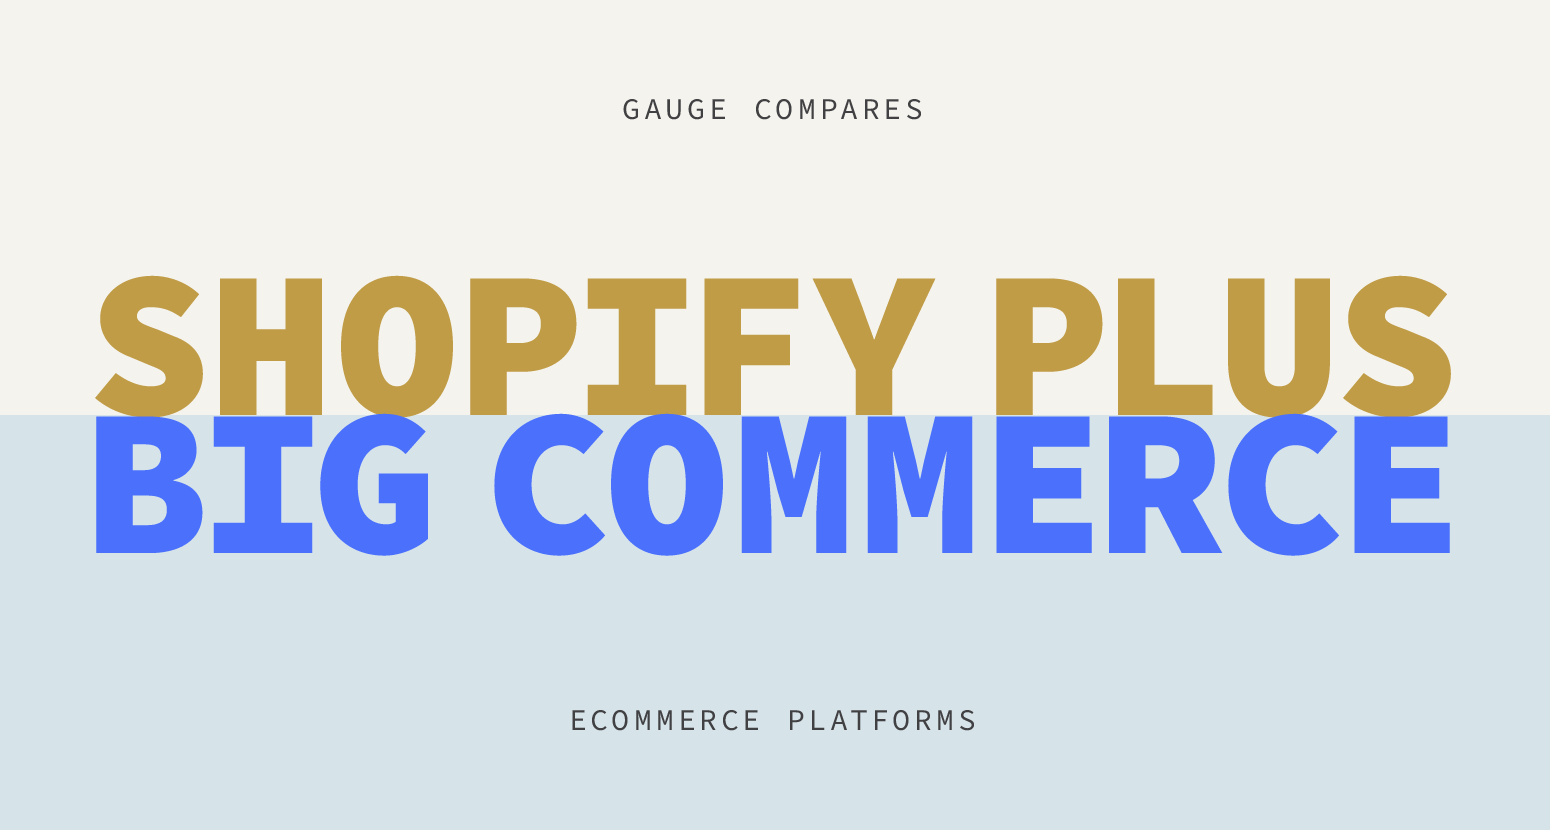 Comparing Shopify Plus to BigCommerce